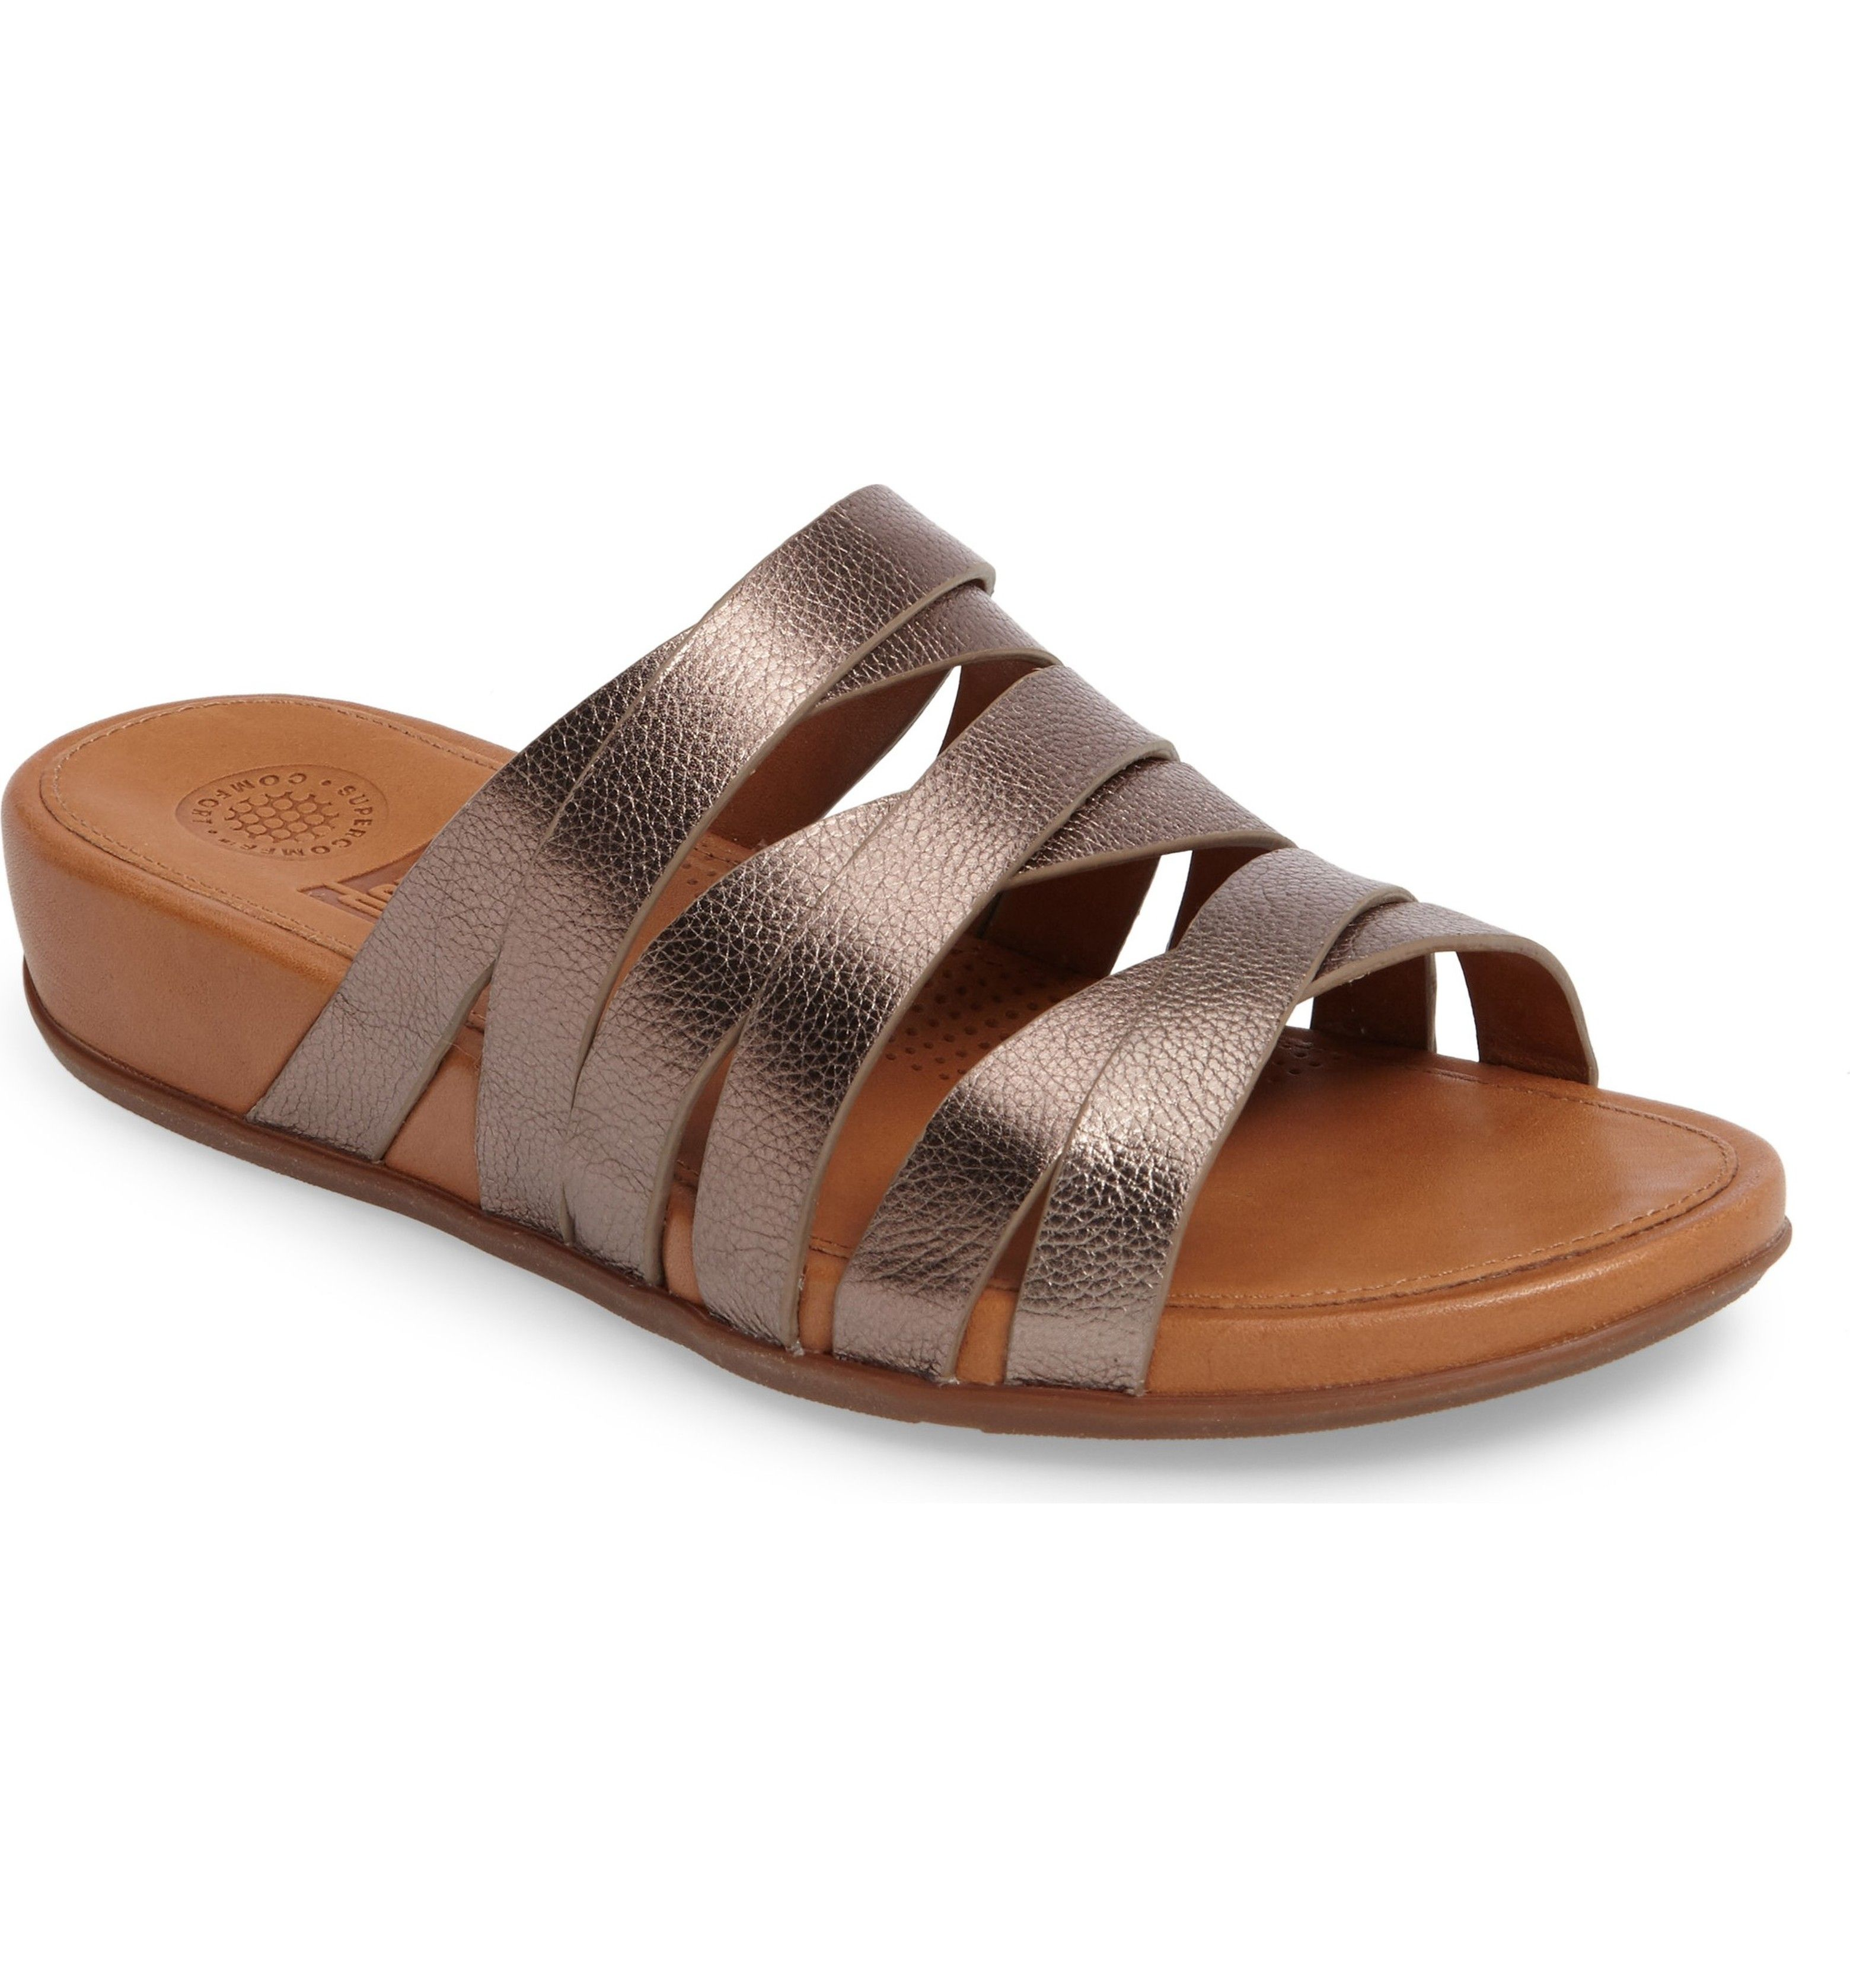 50a5d450041 Main Image - FitFlop™ Lumy Slide Sandal (Women)